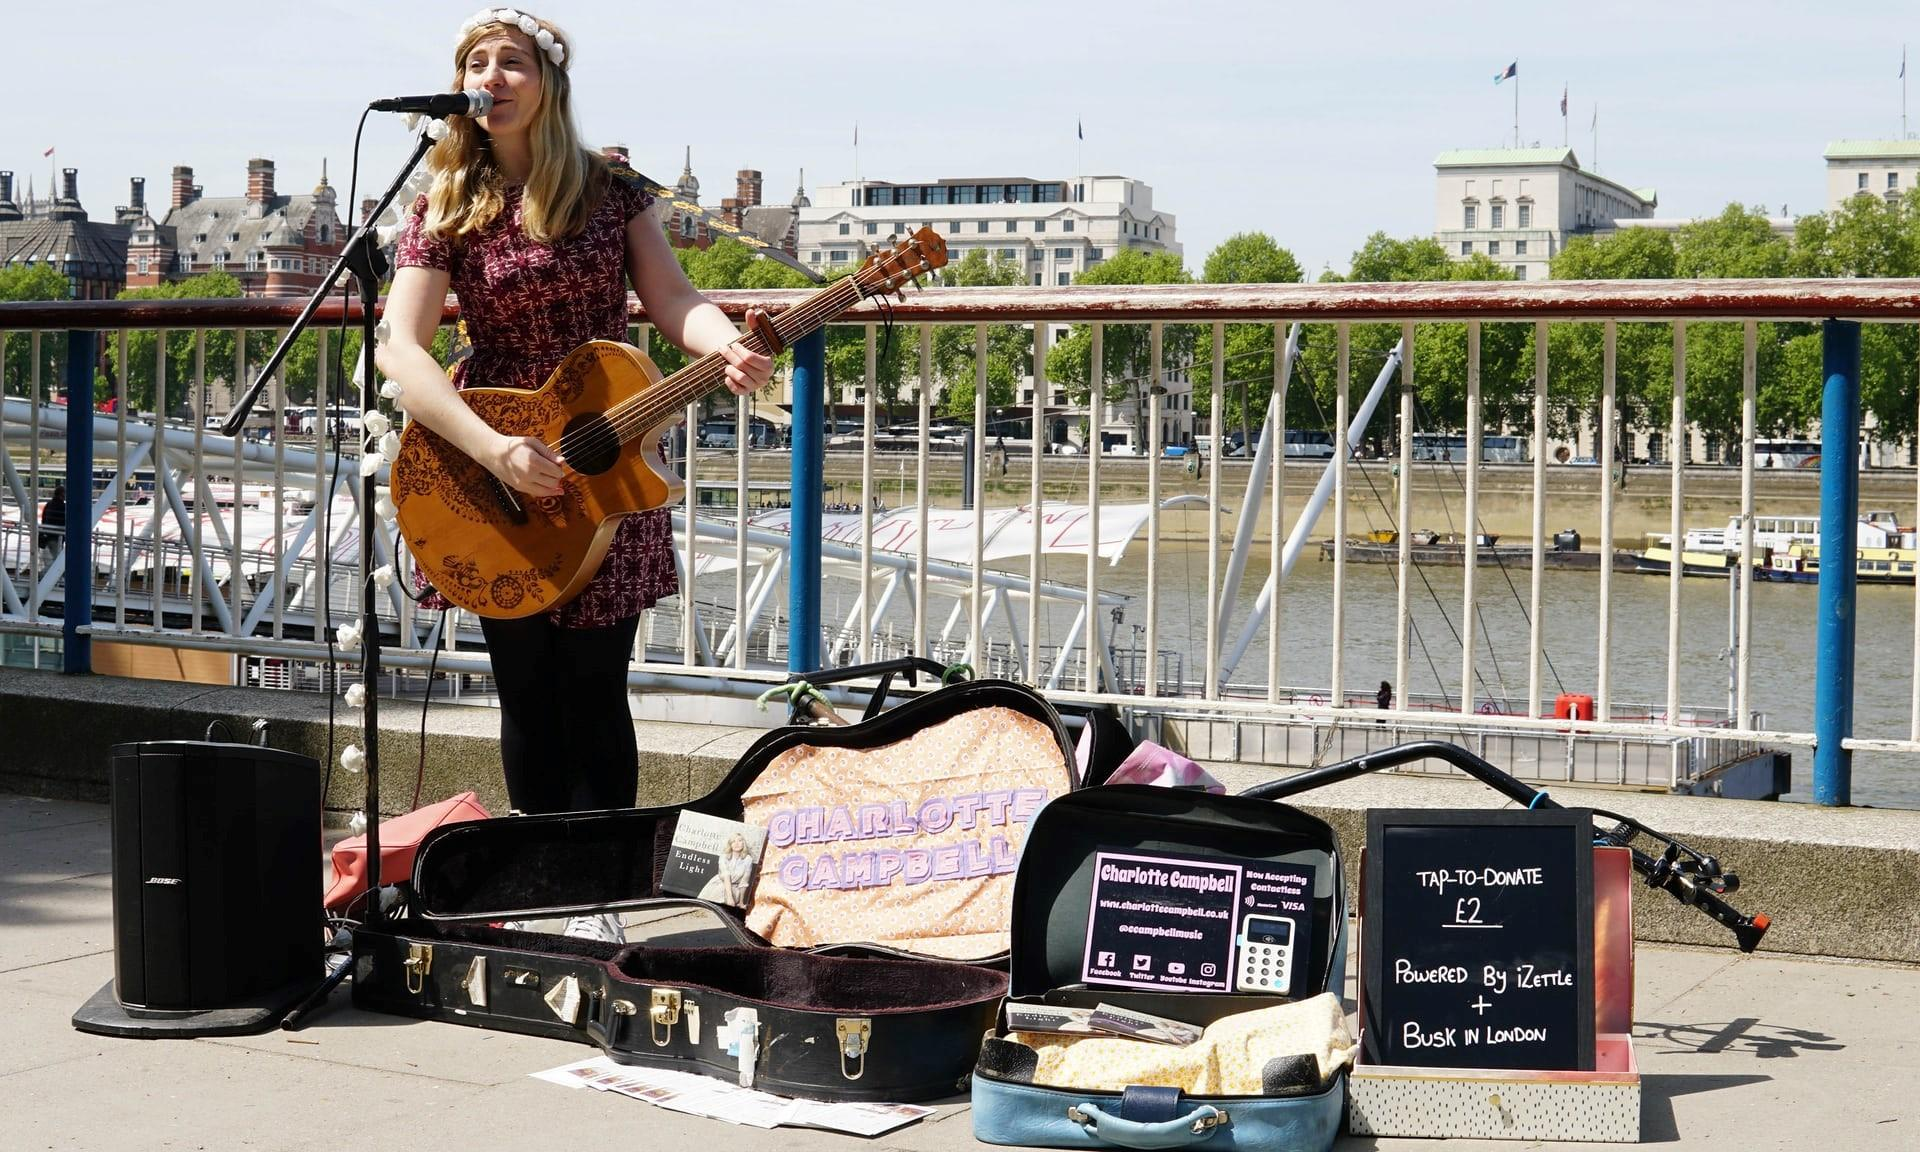 Buskers to start taking contactless card payments in London